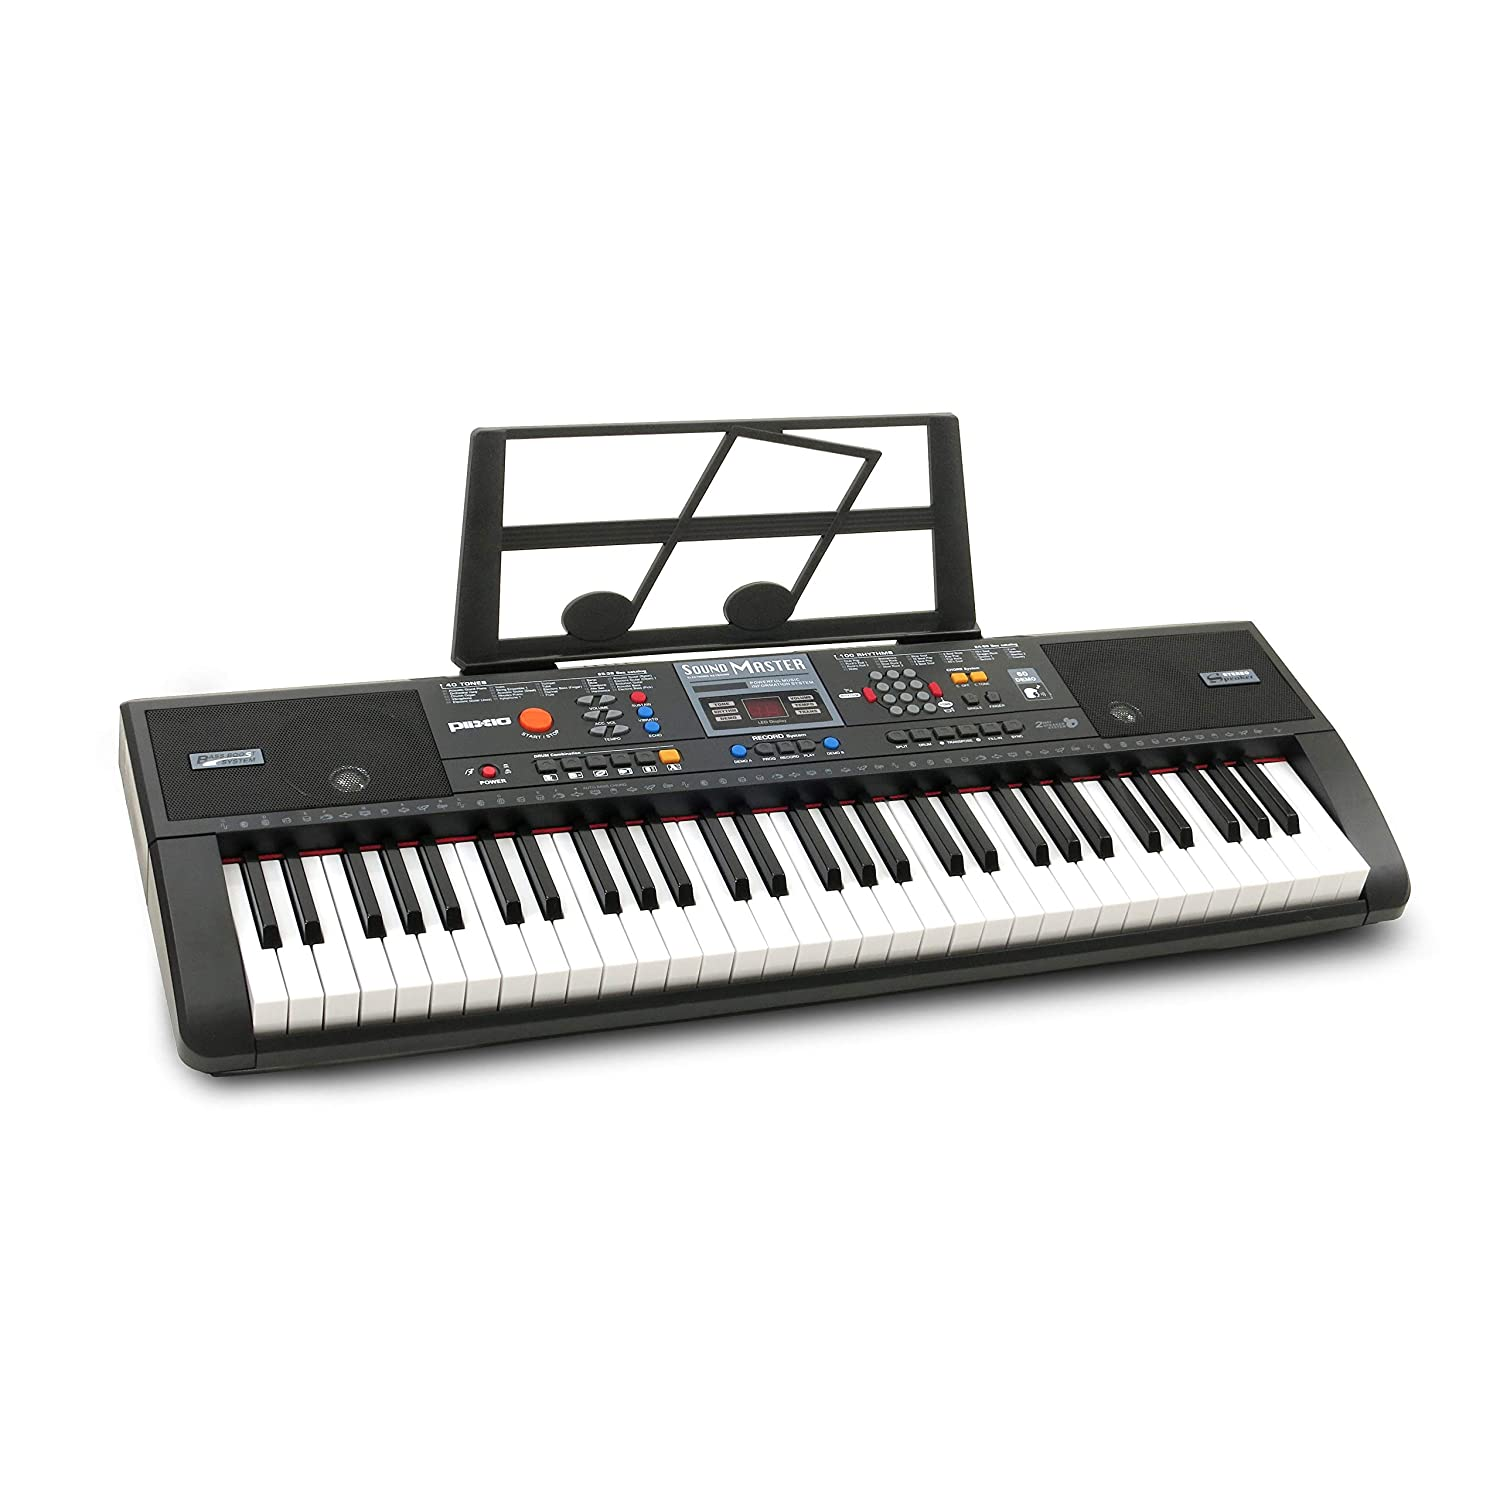 Plixio 61-Key Electric Piano Keyboard with Music Sheet Stand – Portable 10766396